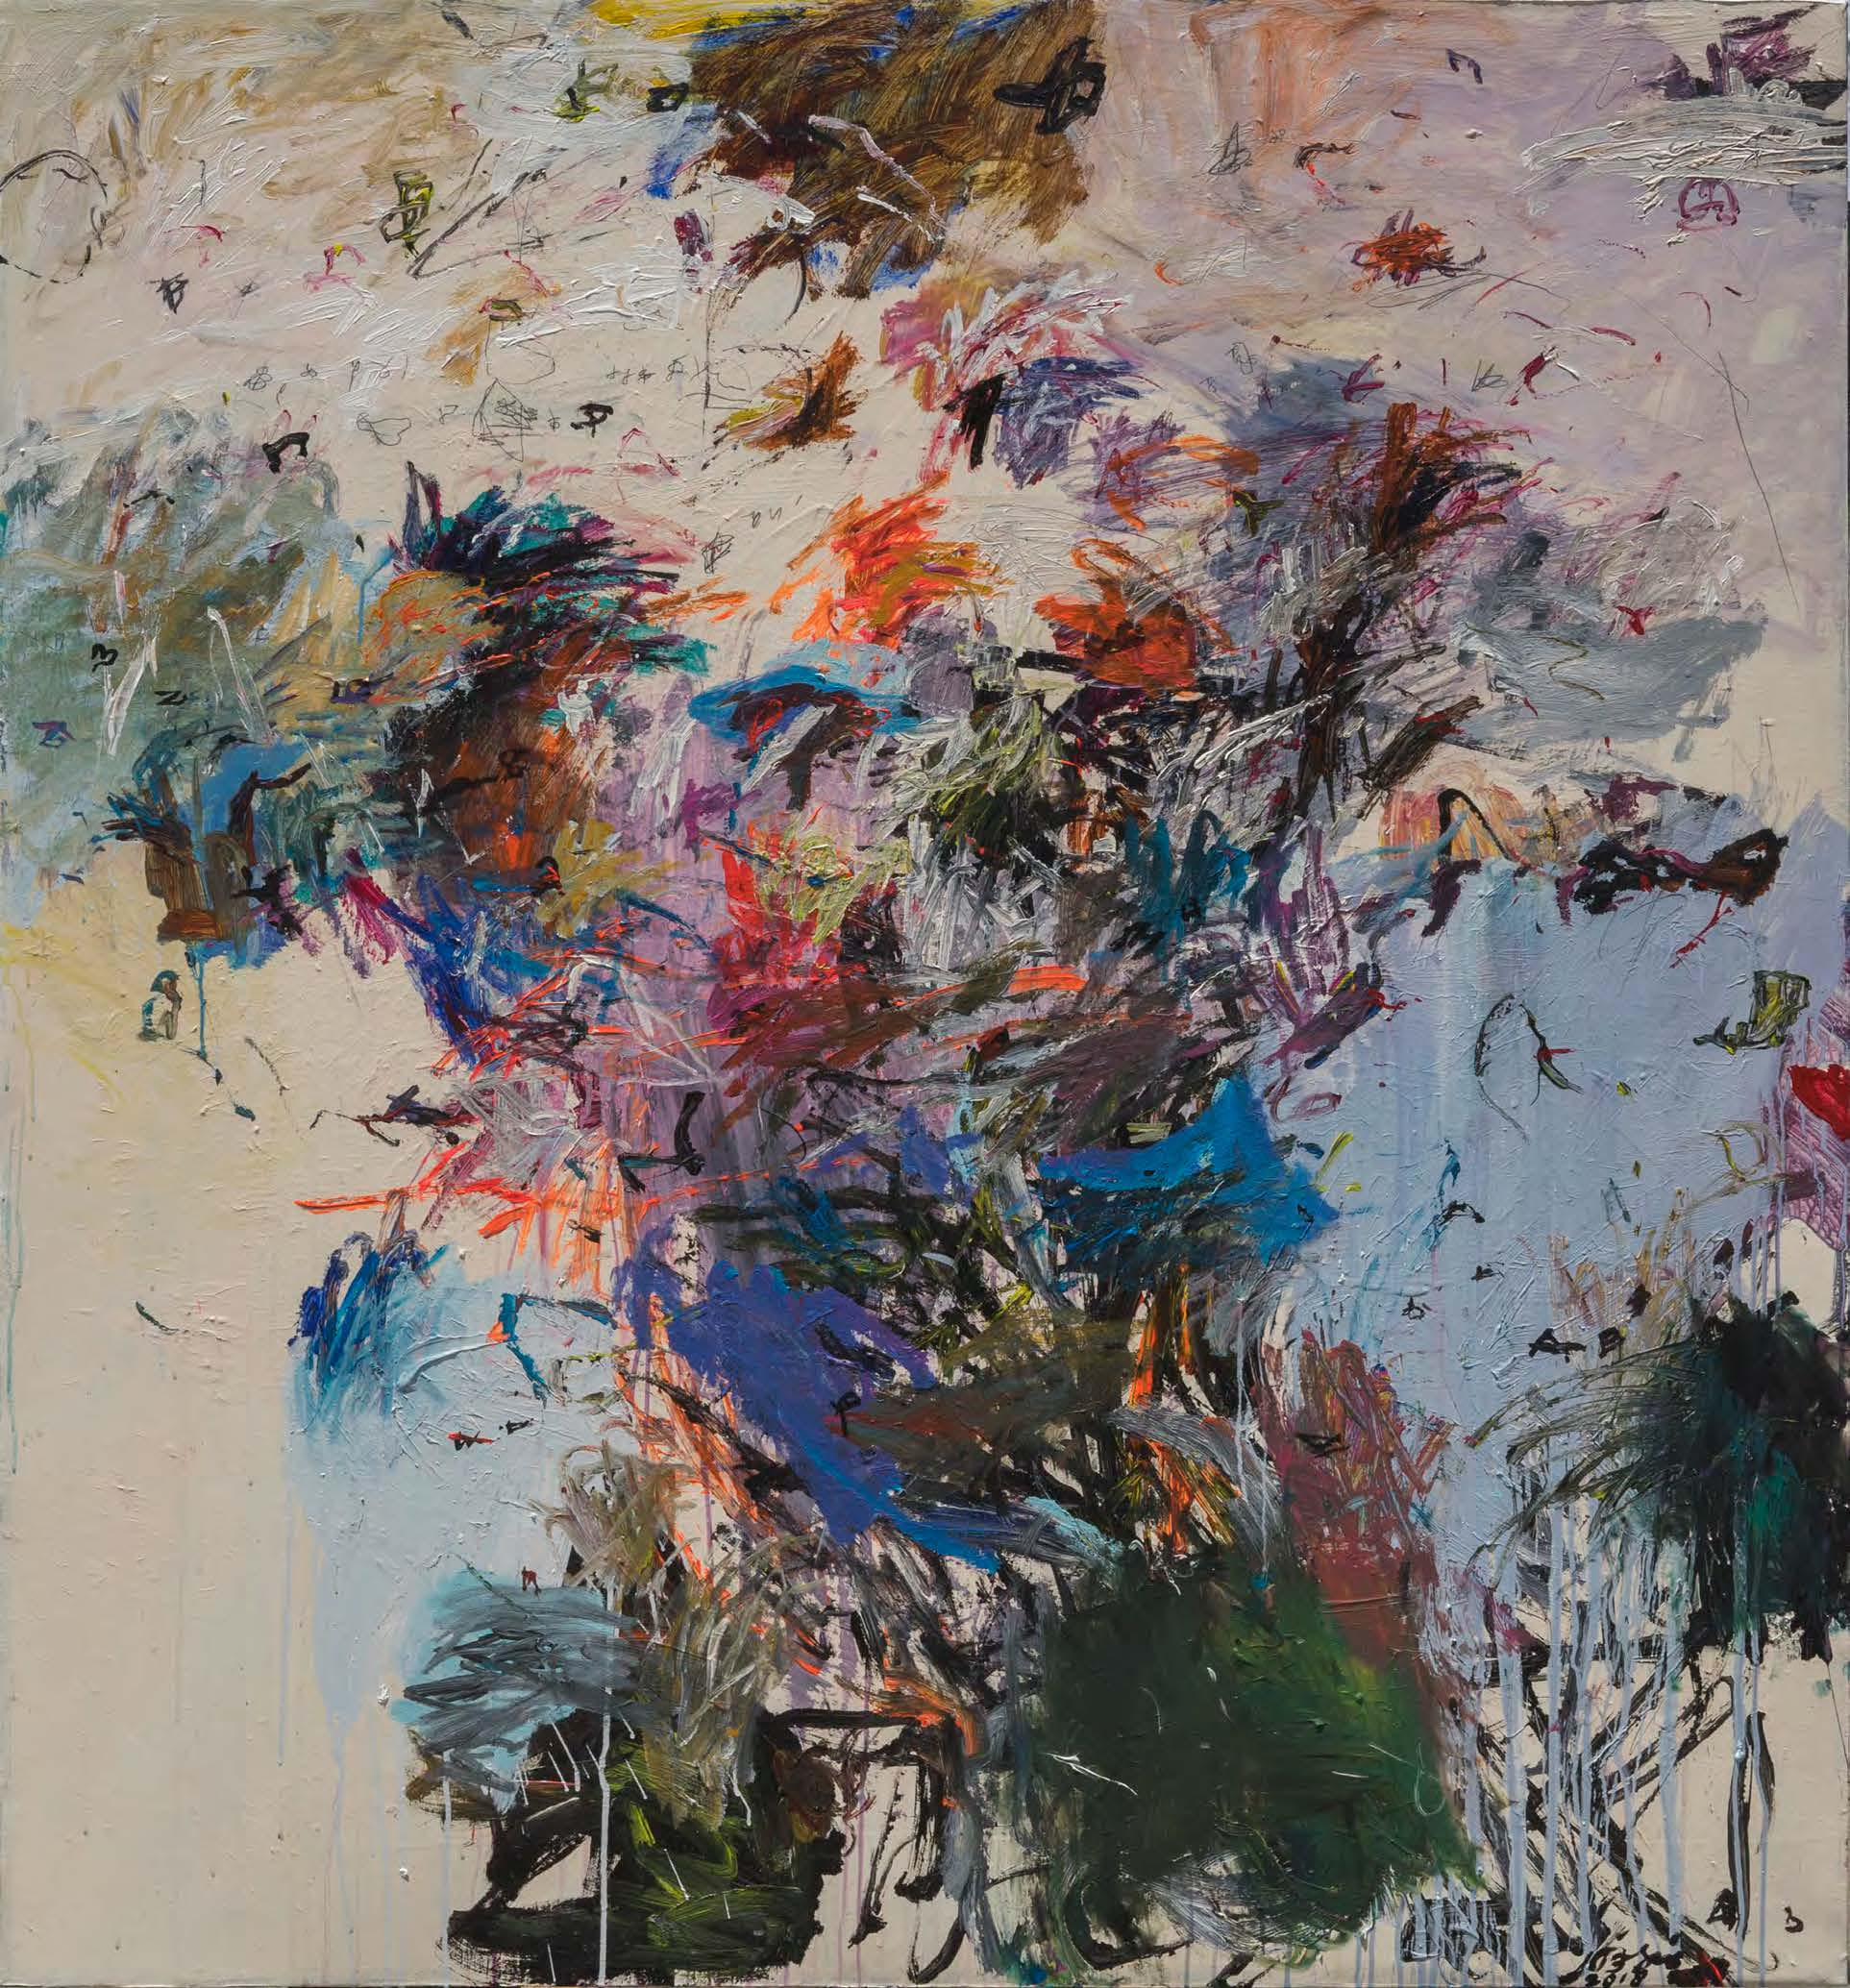 Gajah Gallery Presents Indonesian Abstract Expressionist Ibrahim